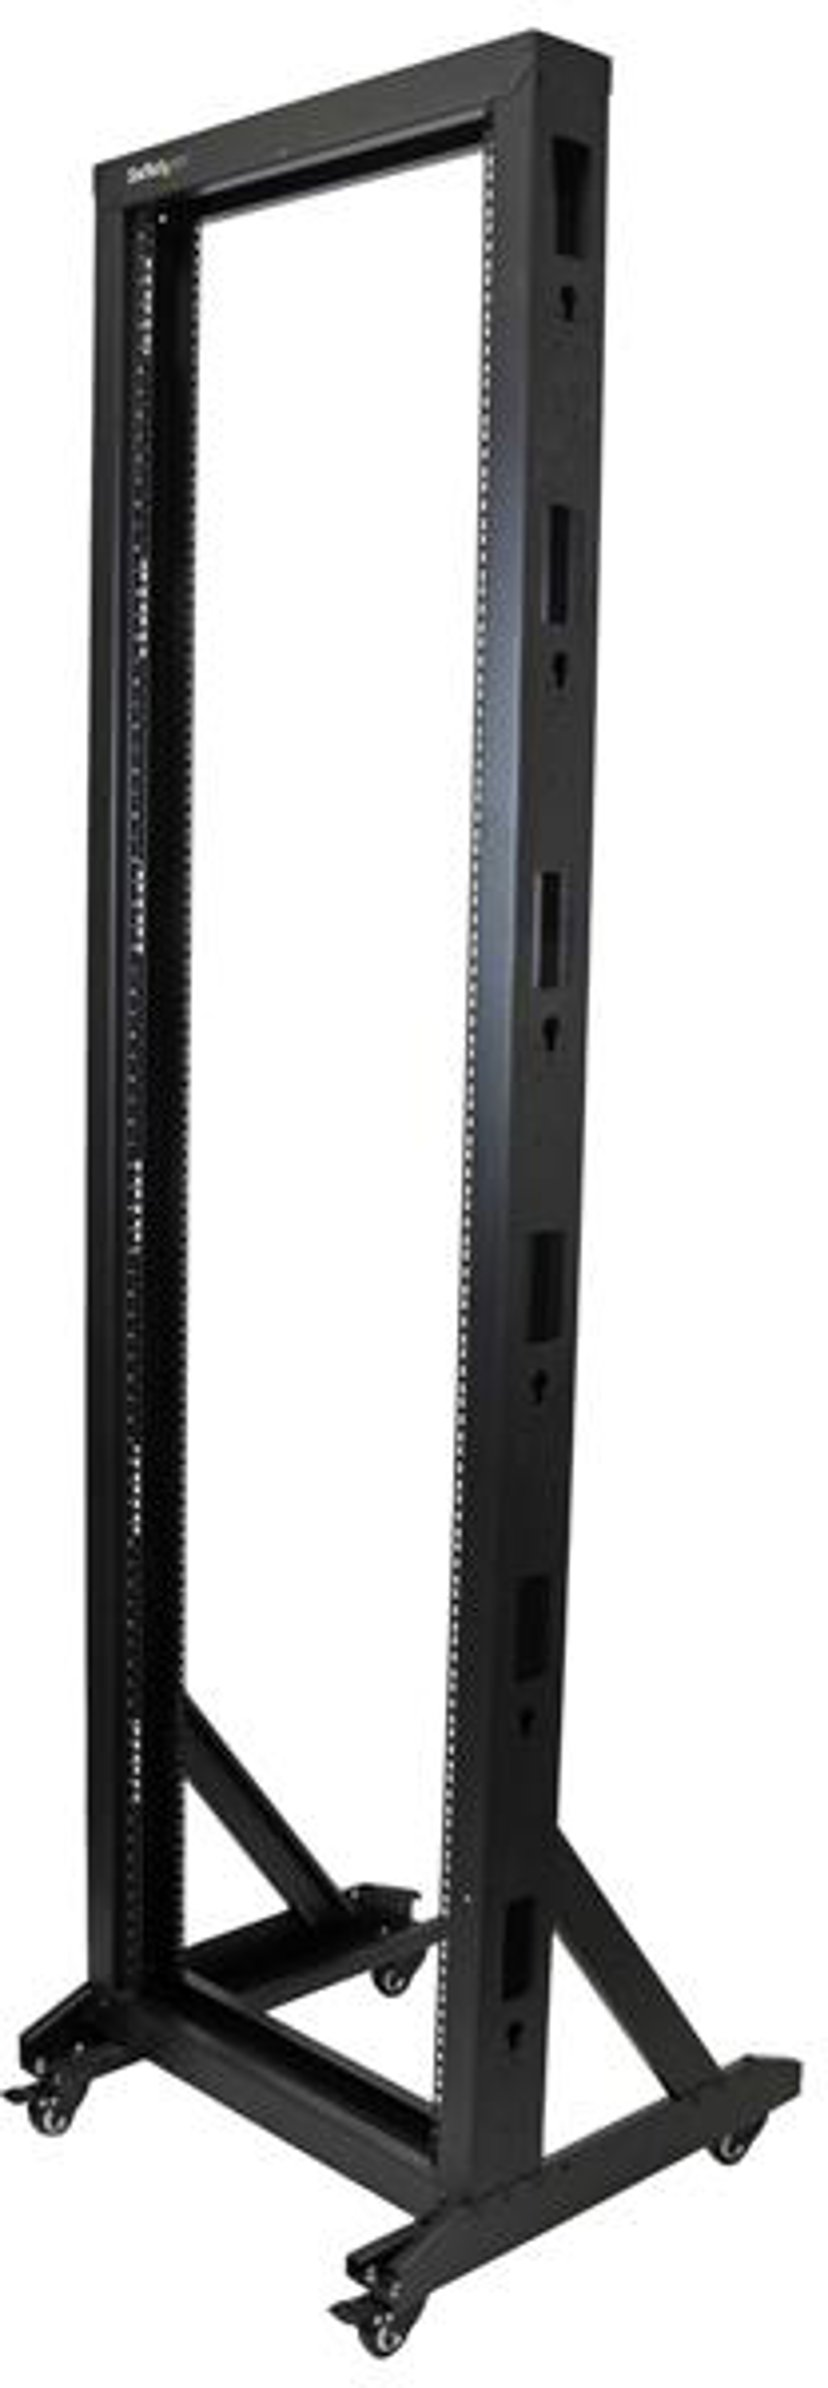 Startech 2-Post Rack for Server Equipment with Casters